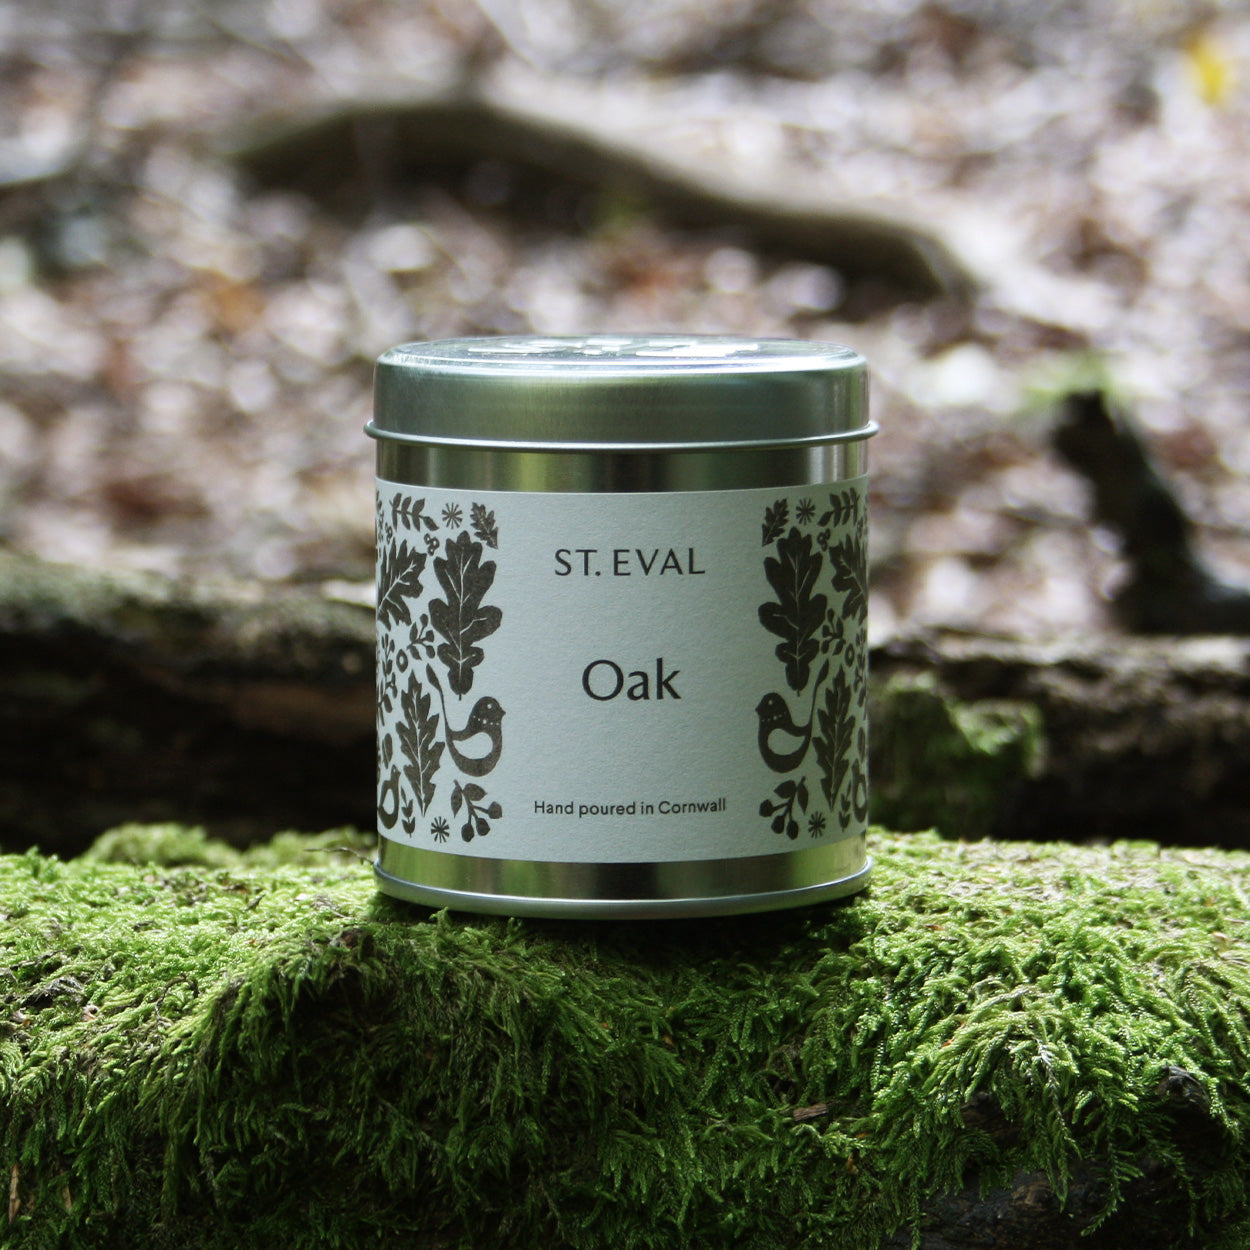 Part of the St. Eval Folk Collection, Oak is a soft and woody oakmoss scent cosseted in rich, warm spice. A masculine fragrance, this scent captures the feeling of walking through a secret forest and stumbling through folk stories of old, Robin Hood or King Arthur - an enchanting escape from the modern day.